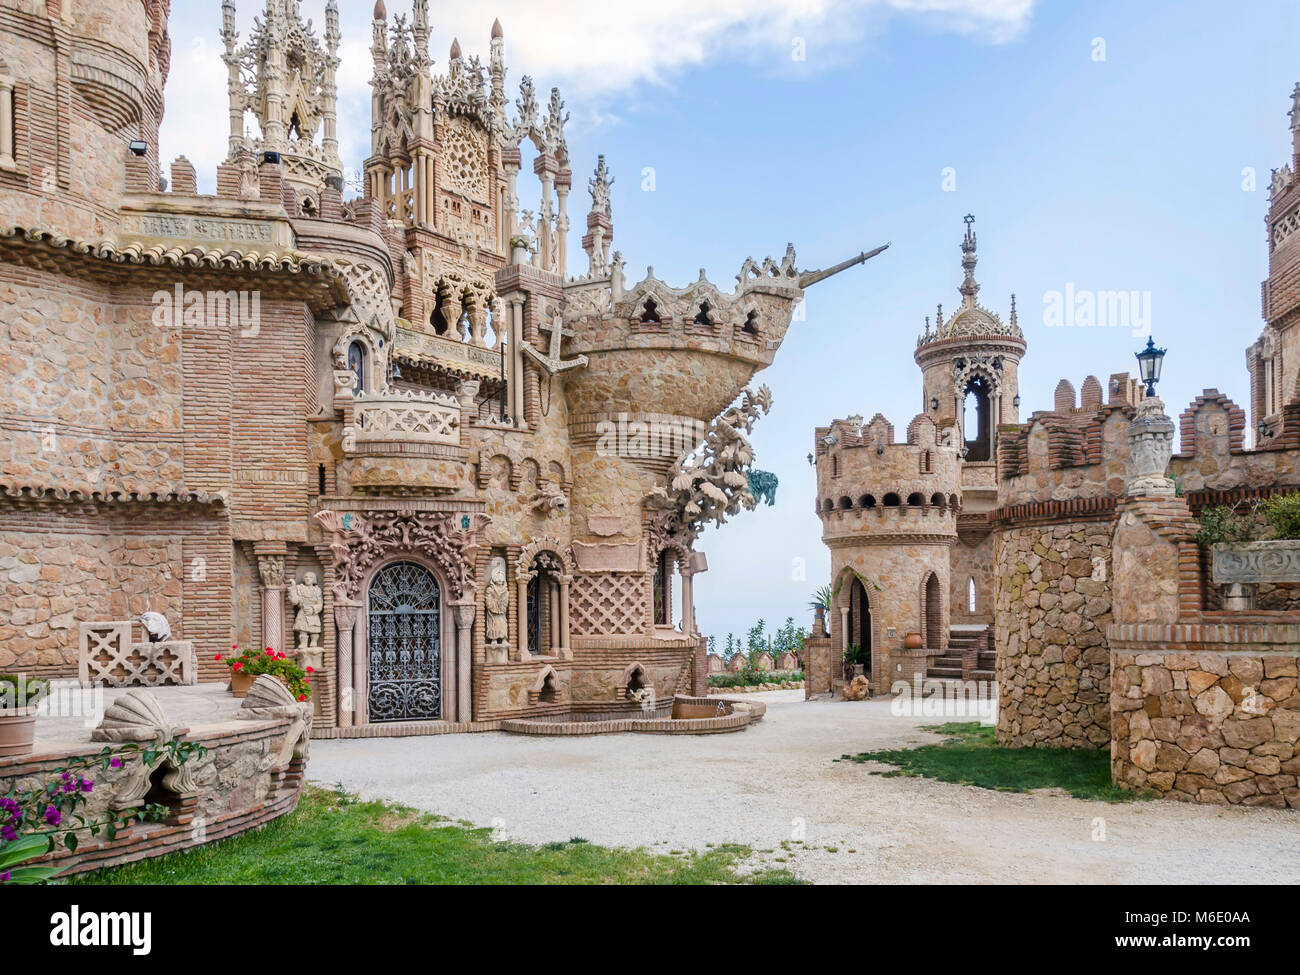 Benalmadena, Spain - MAI 30, 2015: Castillo Monumento Colo Mares. This castle-shaped building is  a monument dedicated - Stock Image